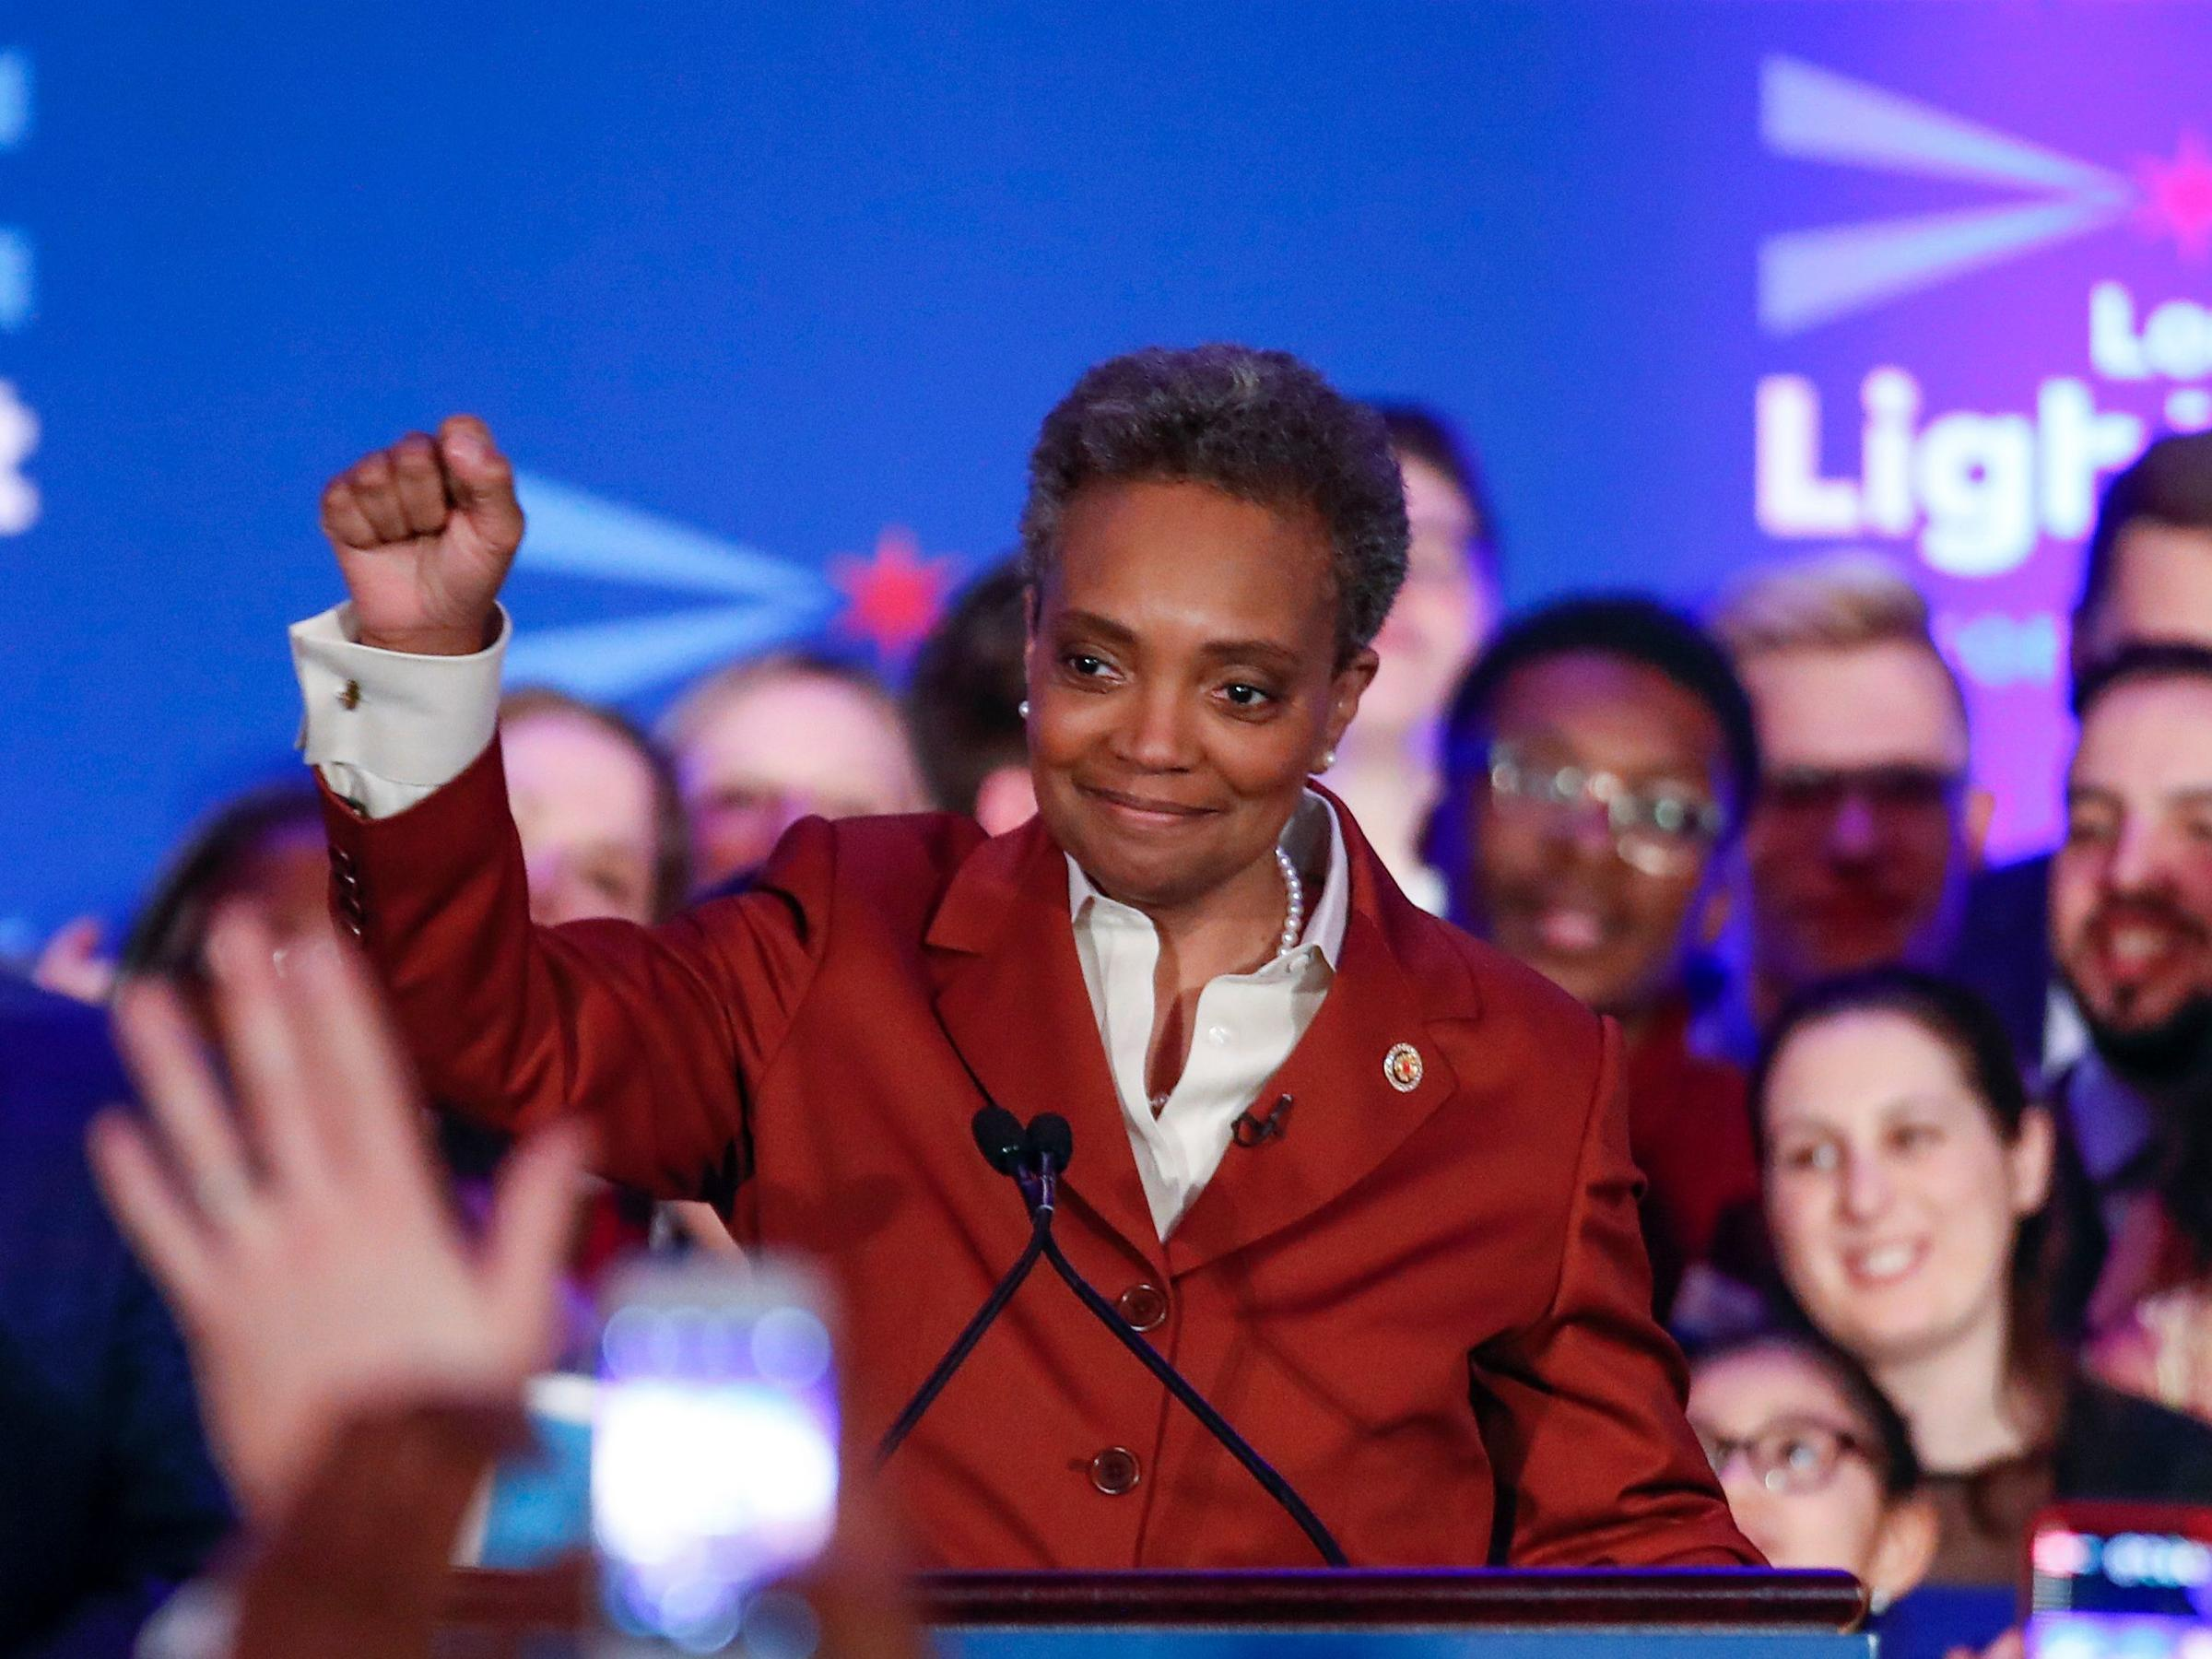 Political outsider Lori Lightfoot wins mayoral race in Chicago